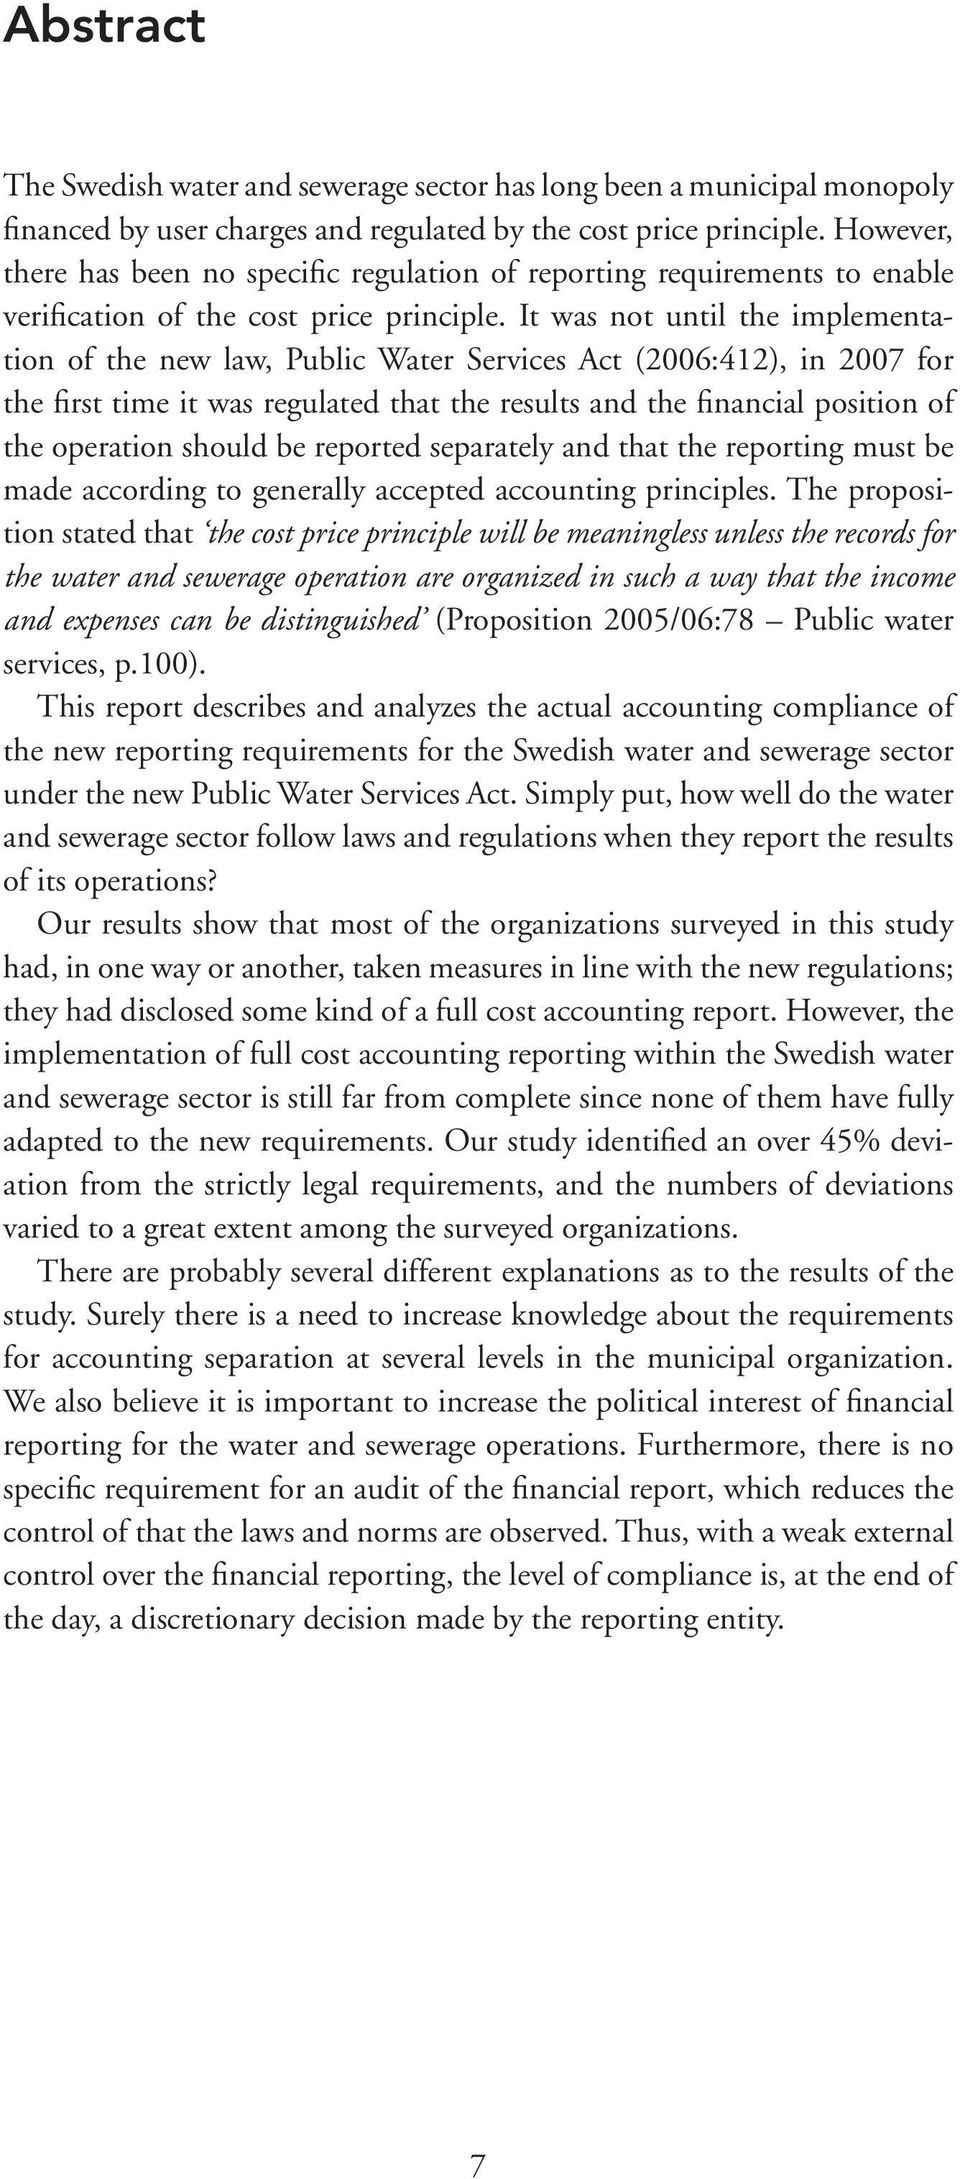 It was not until the implementation of the new law, Public Water Services Act (2006:412), in 2007 for the first time it was regulated that the results and the financial position of the operation